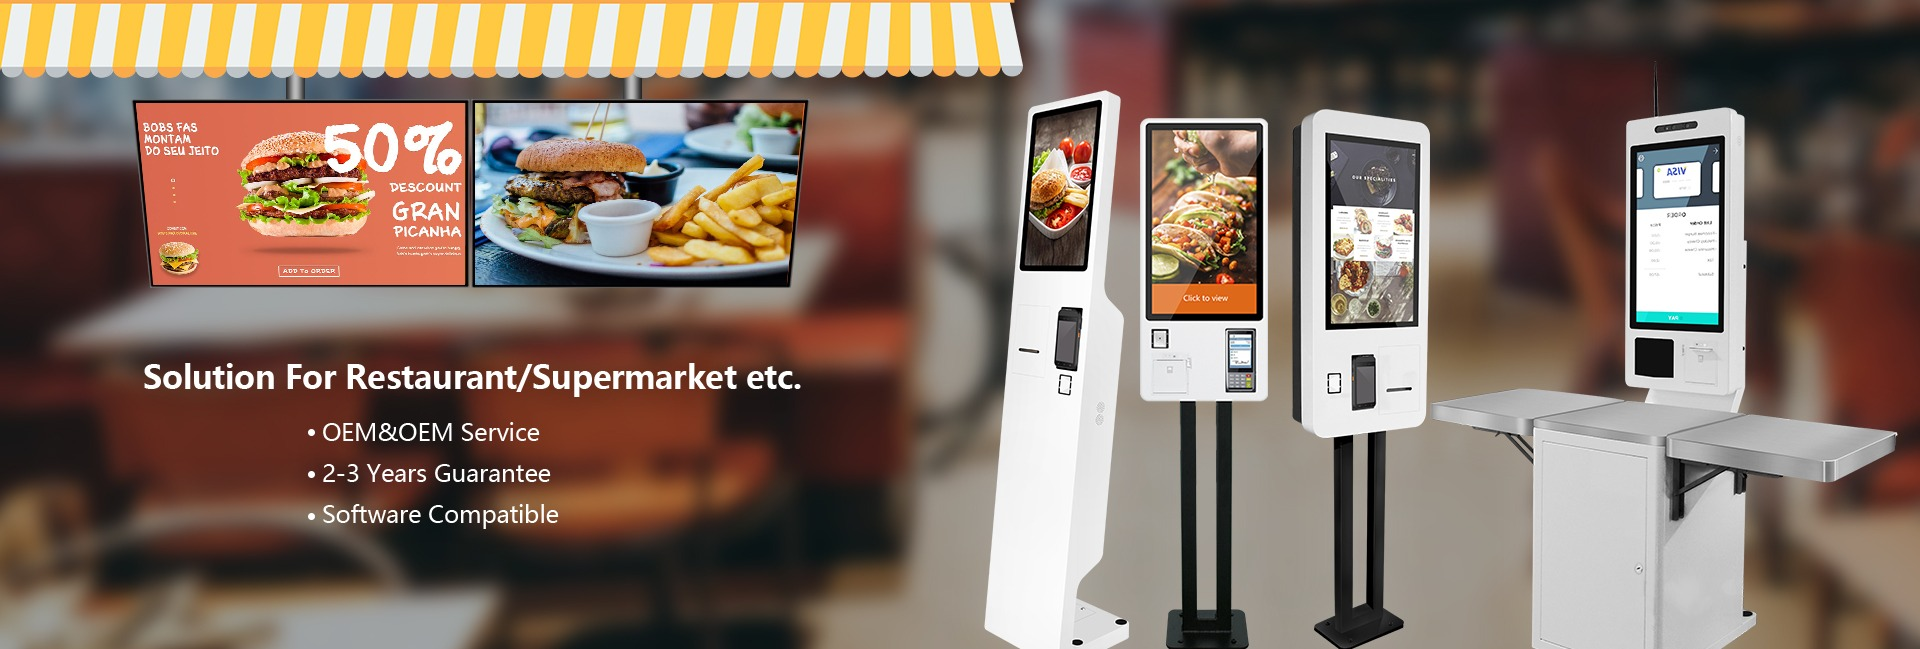 hospitality point of sale systems Digital Screens and self order kiosk